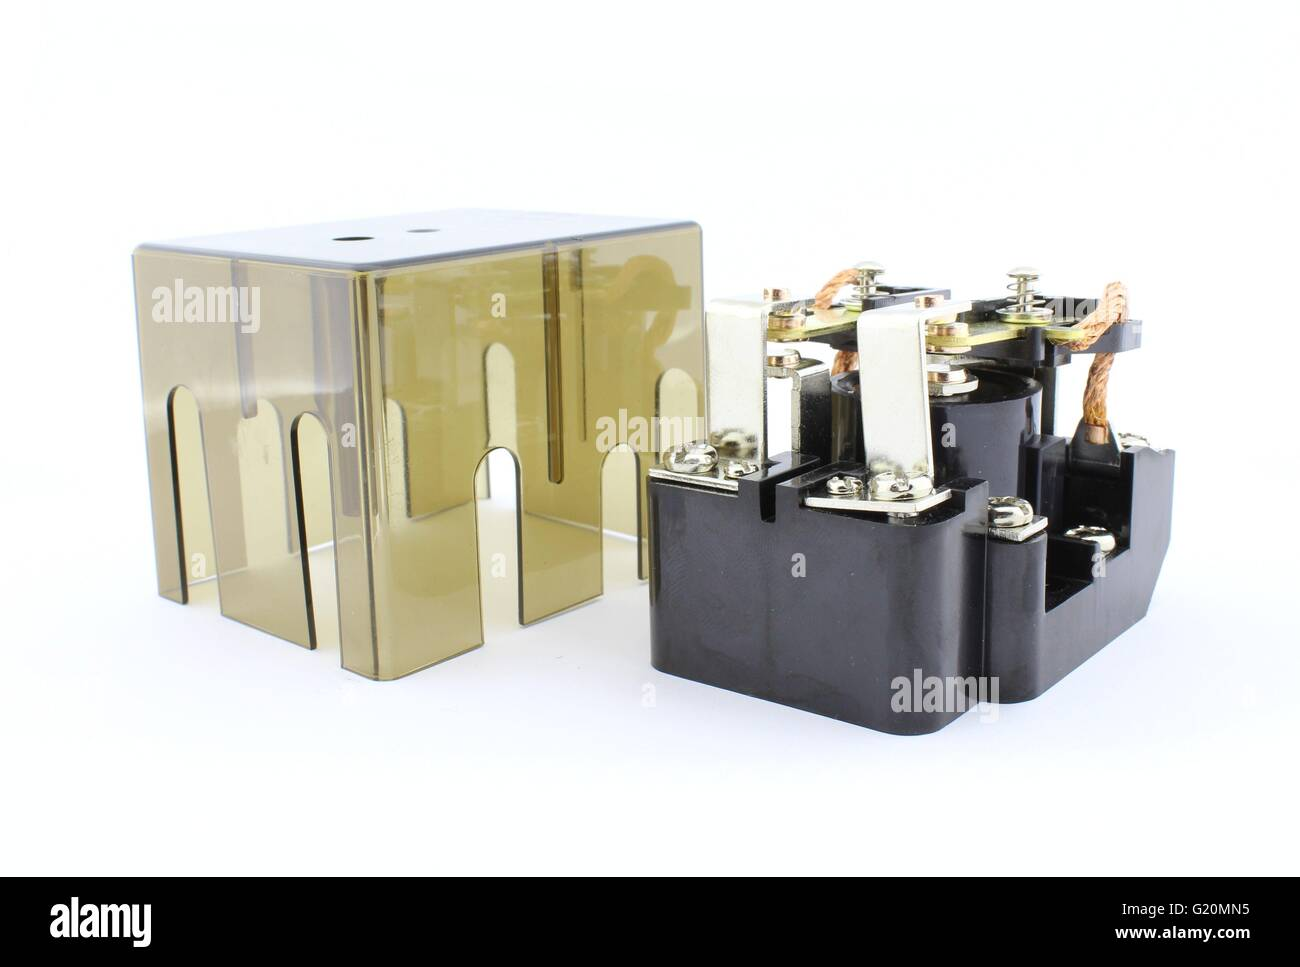 Electrical Relay Switch Stock Photos Electrical Relay Switch Stock